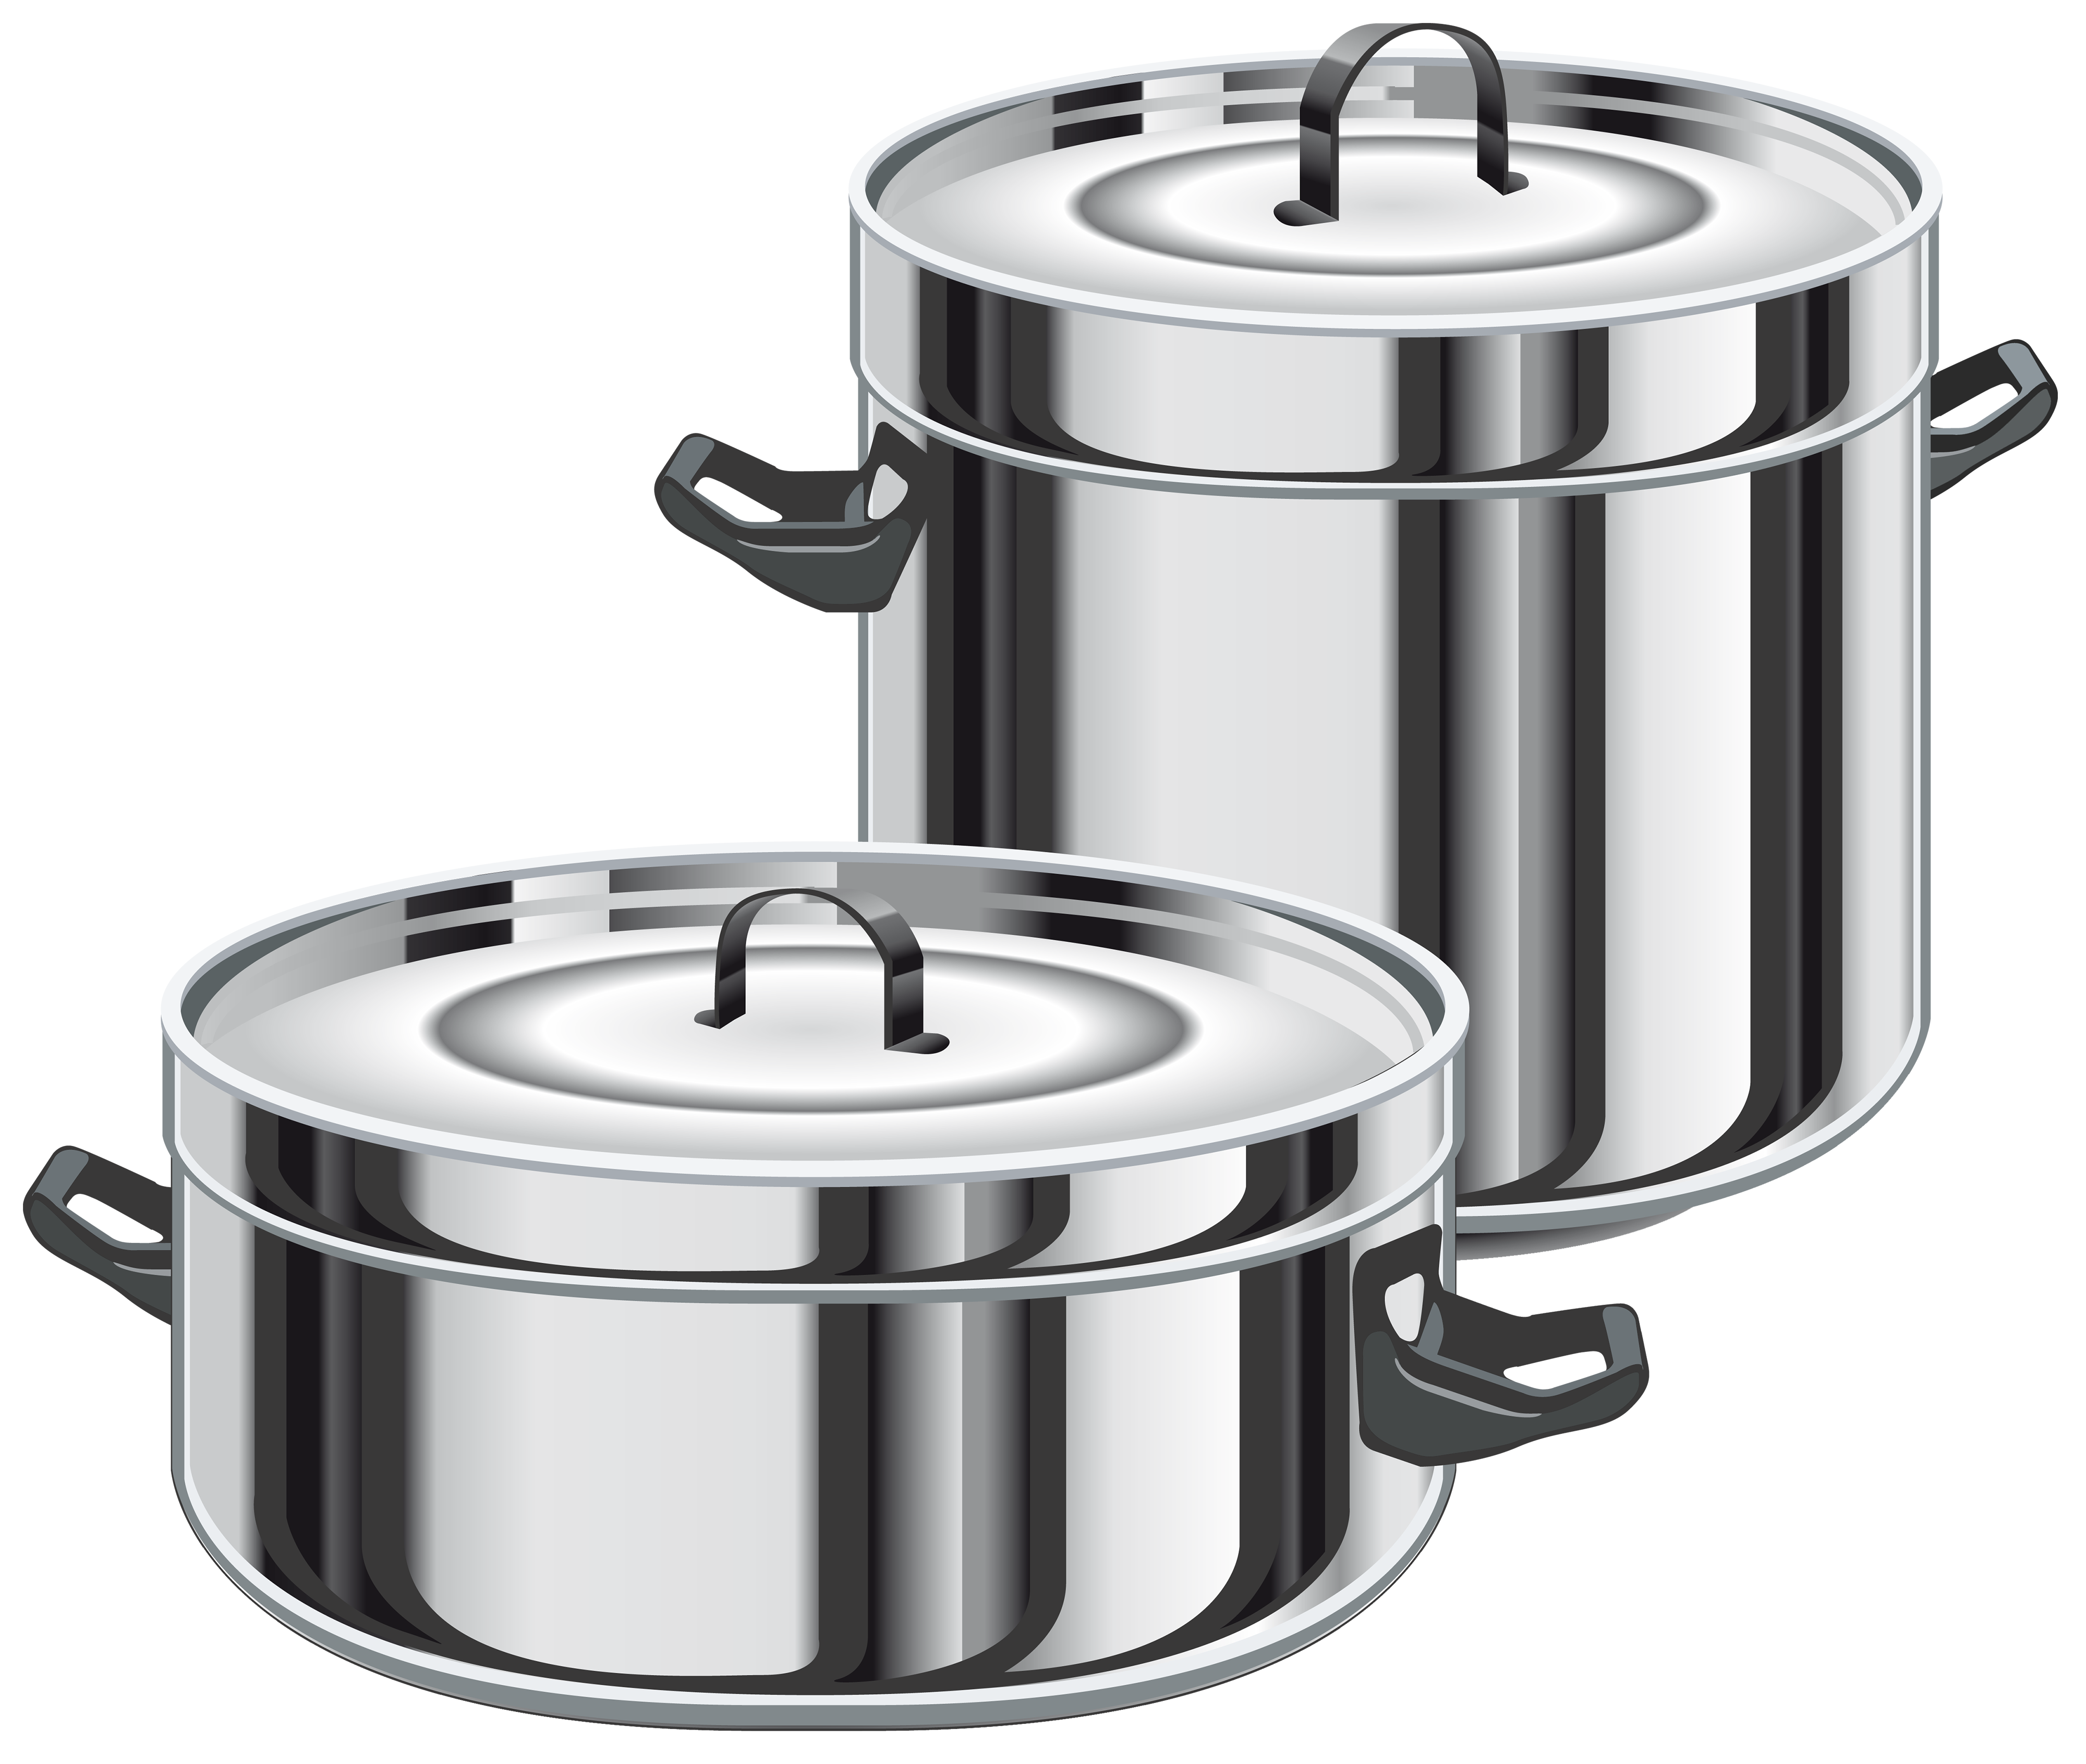 Pot clipart cookin. Cooking pots png best